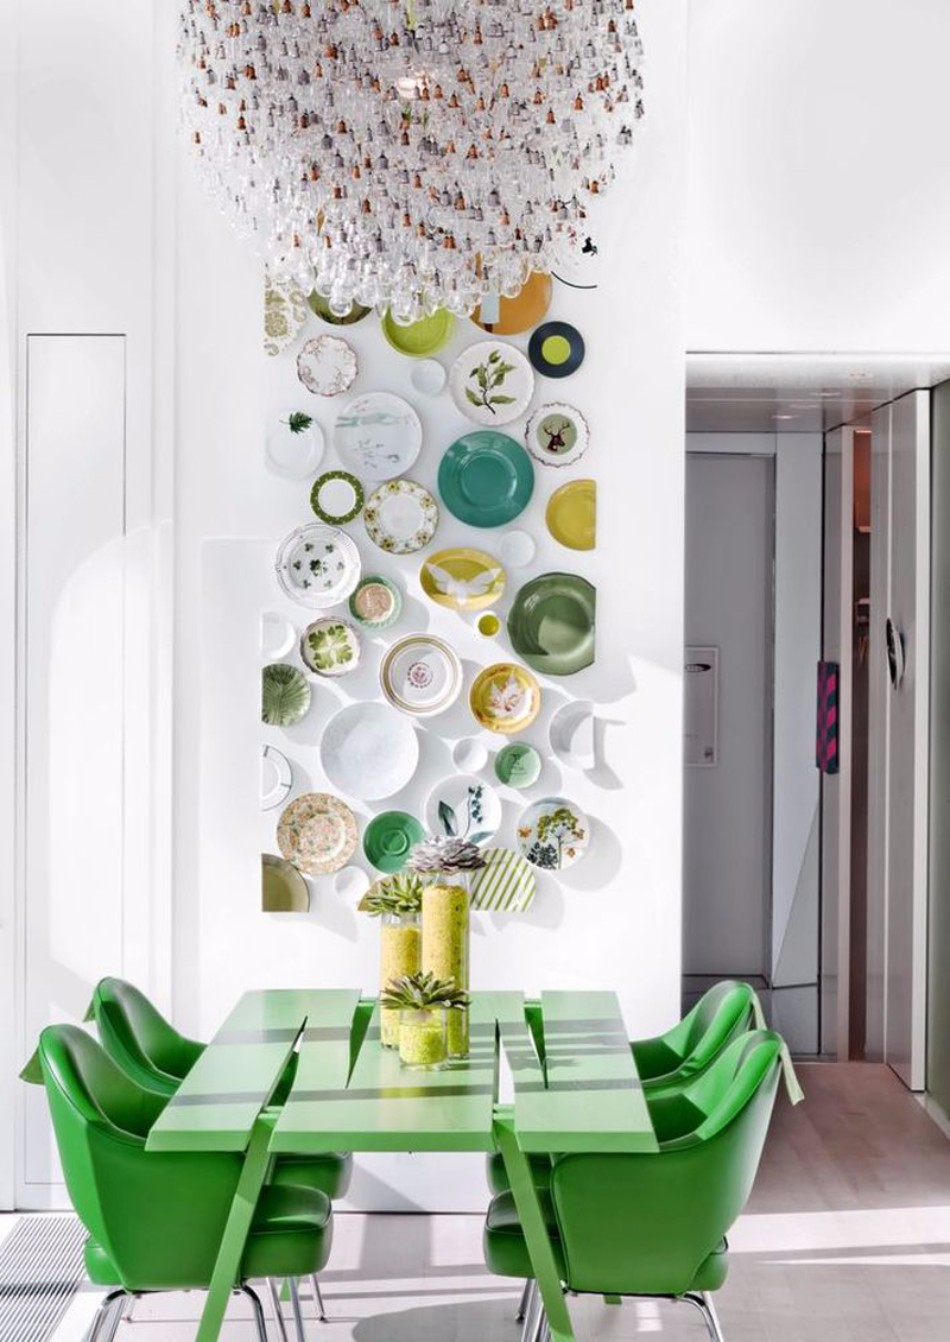 COLORED TABLES: GREENERY